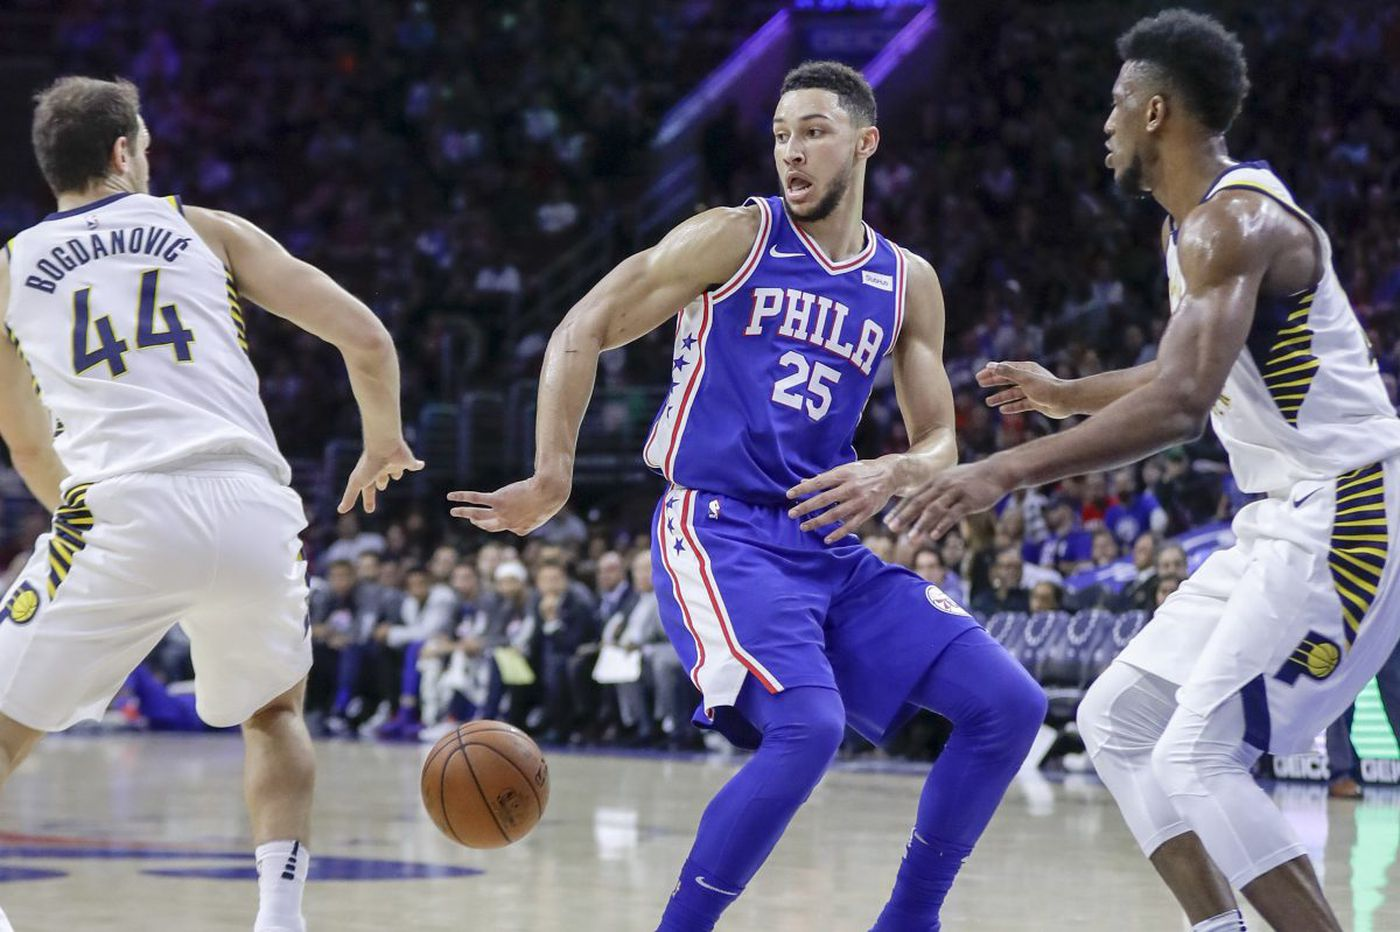 Sixers don't always need A-plus performance from their stars to win